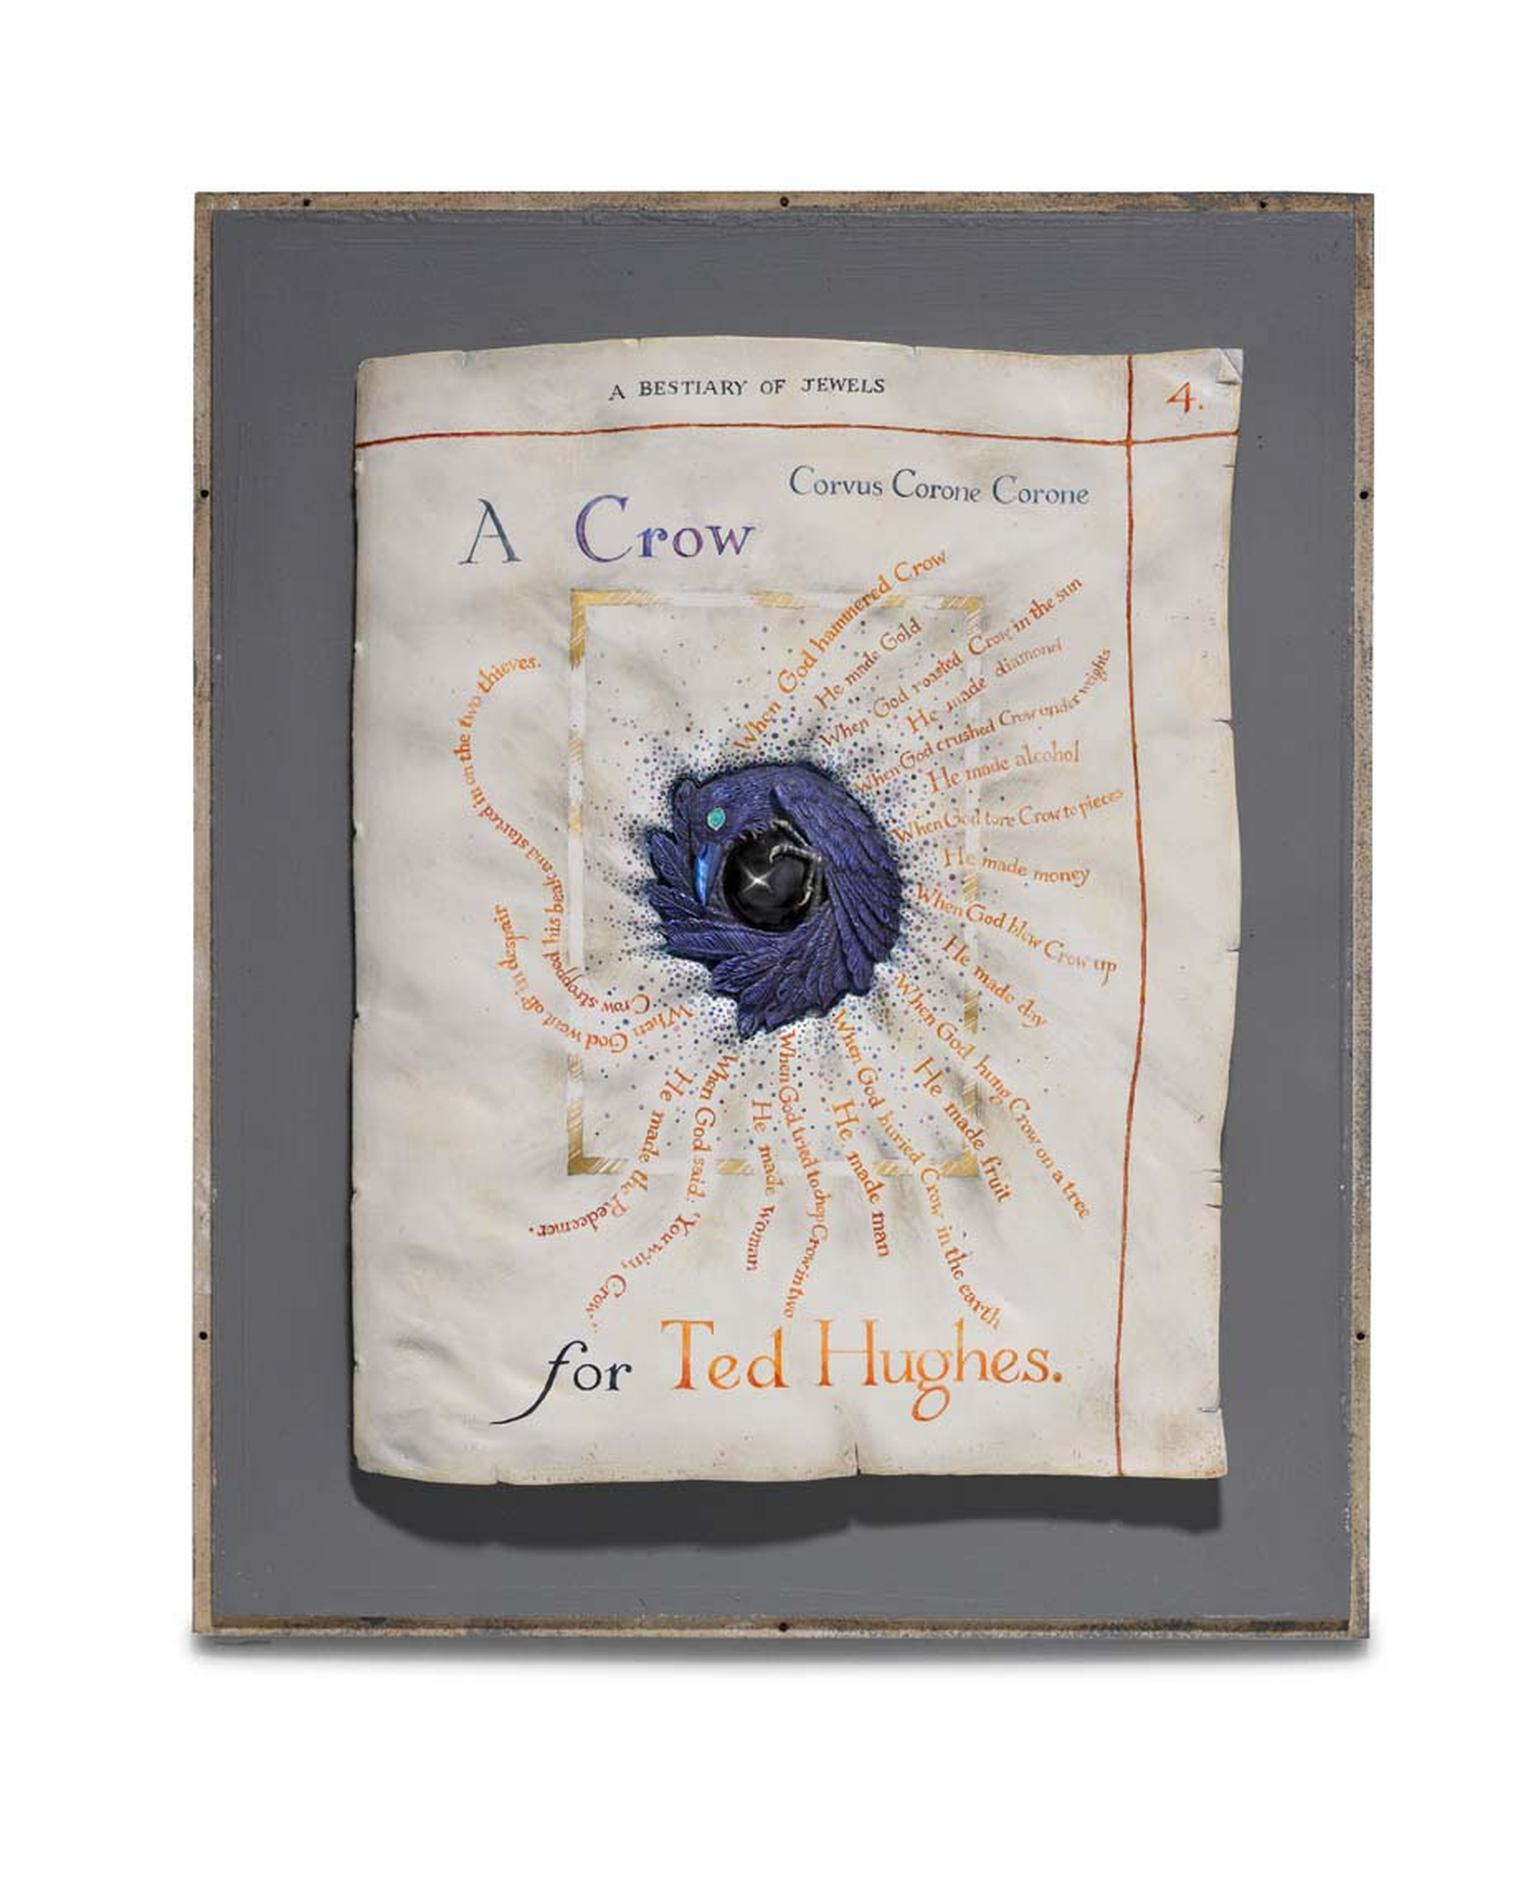 Kevin Coates 'A Crow for Ted Hughes' 2012 brooch